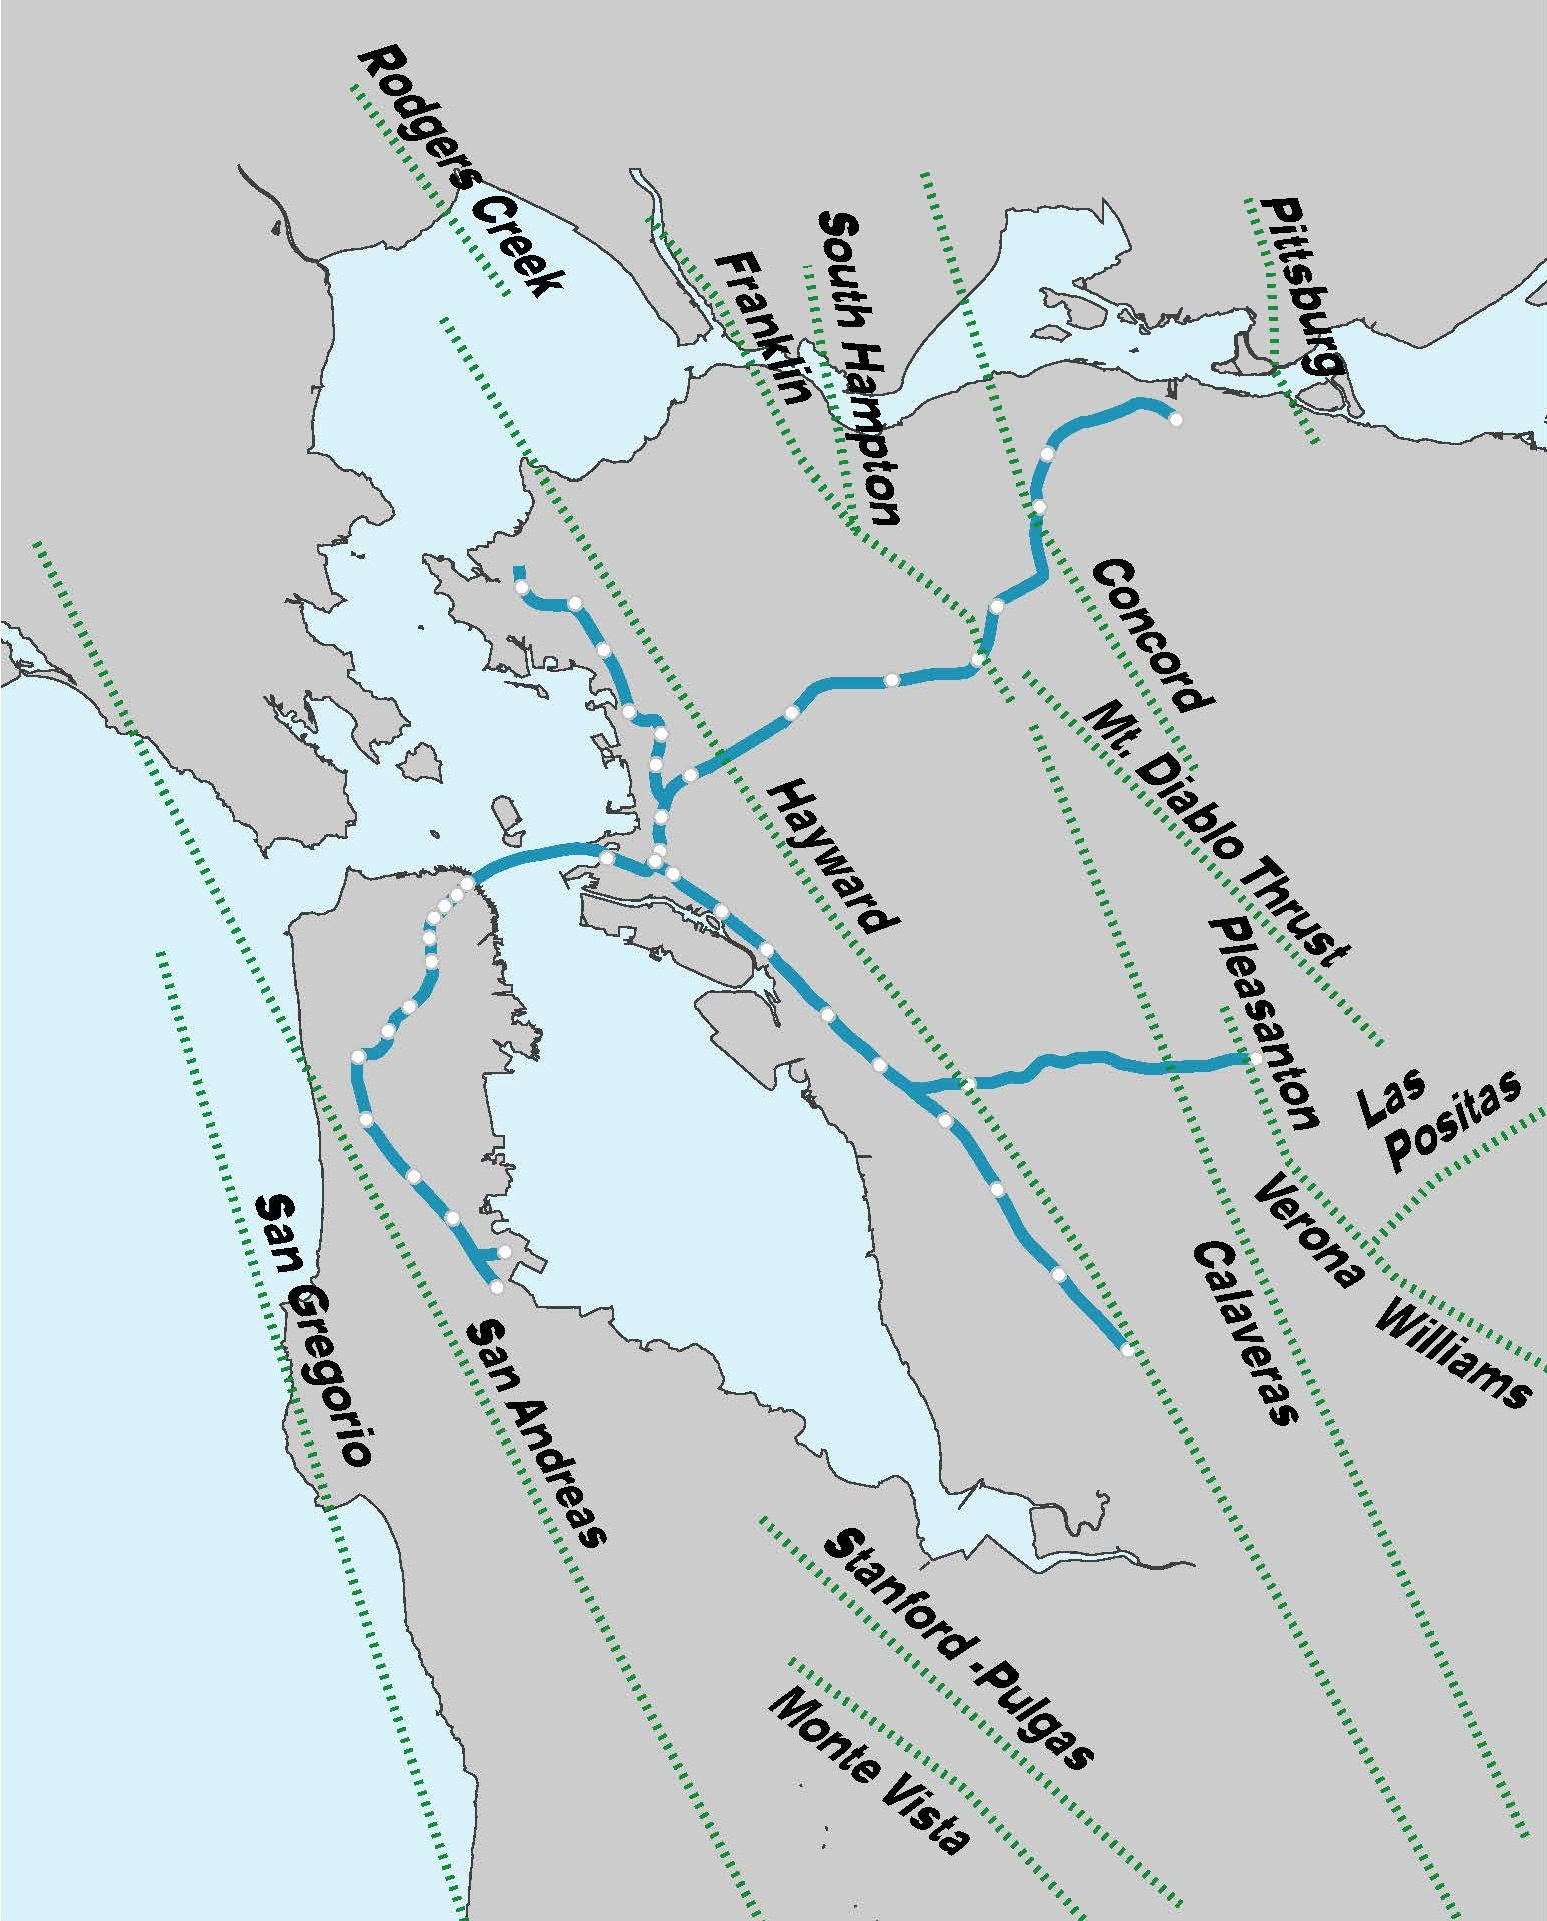 Bay Area seismic fault line map